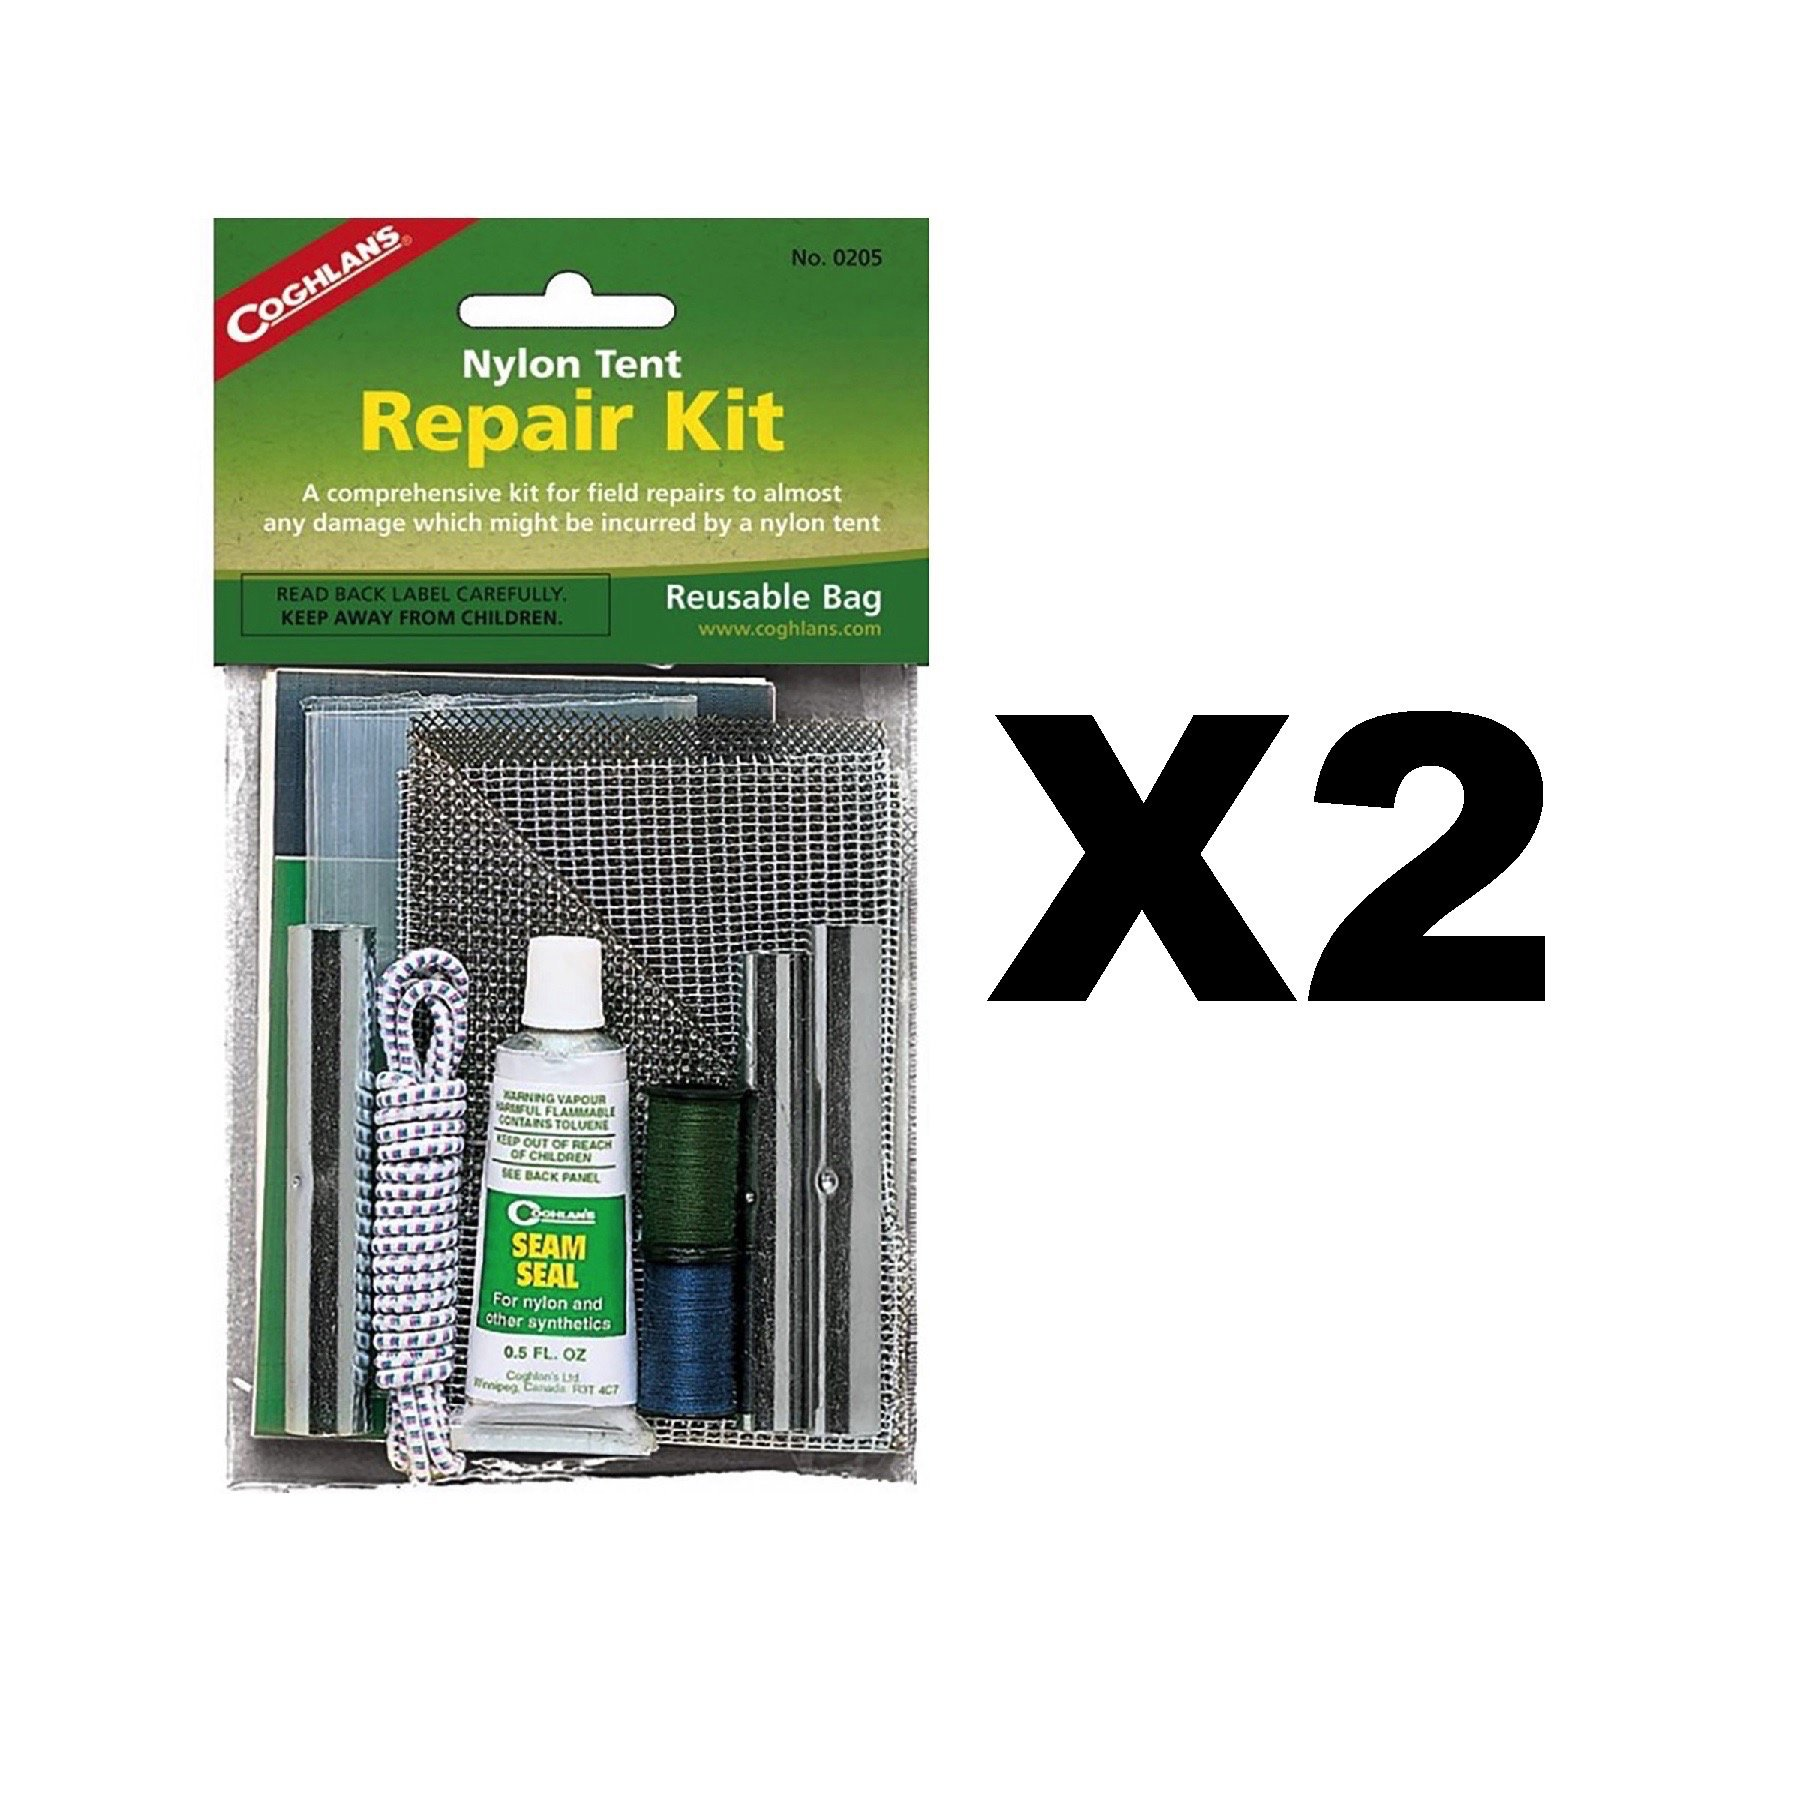 Coghlans 0205 Nylon Tent Repair Kit